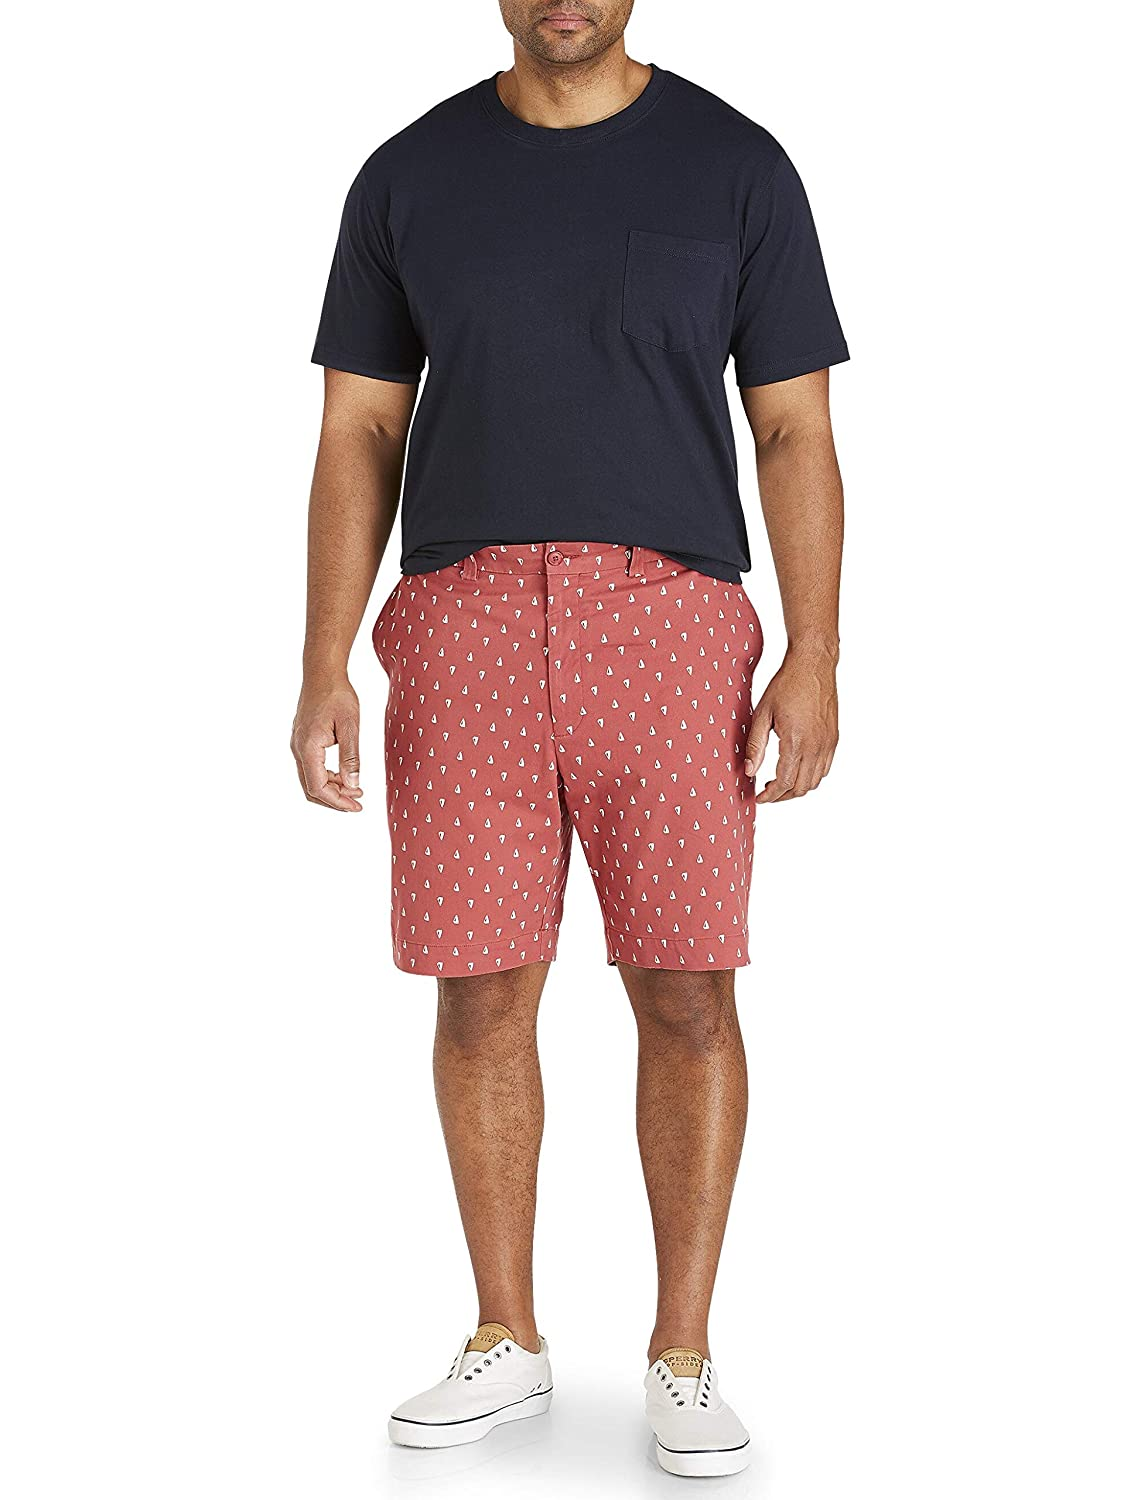 Oak Hill by DXL Big and Tall Sailboat Pattern Stretch Shorts Nantucket Red